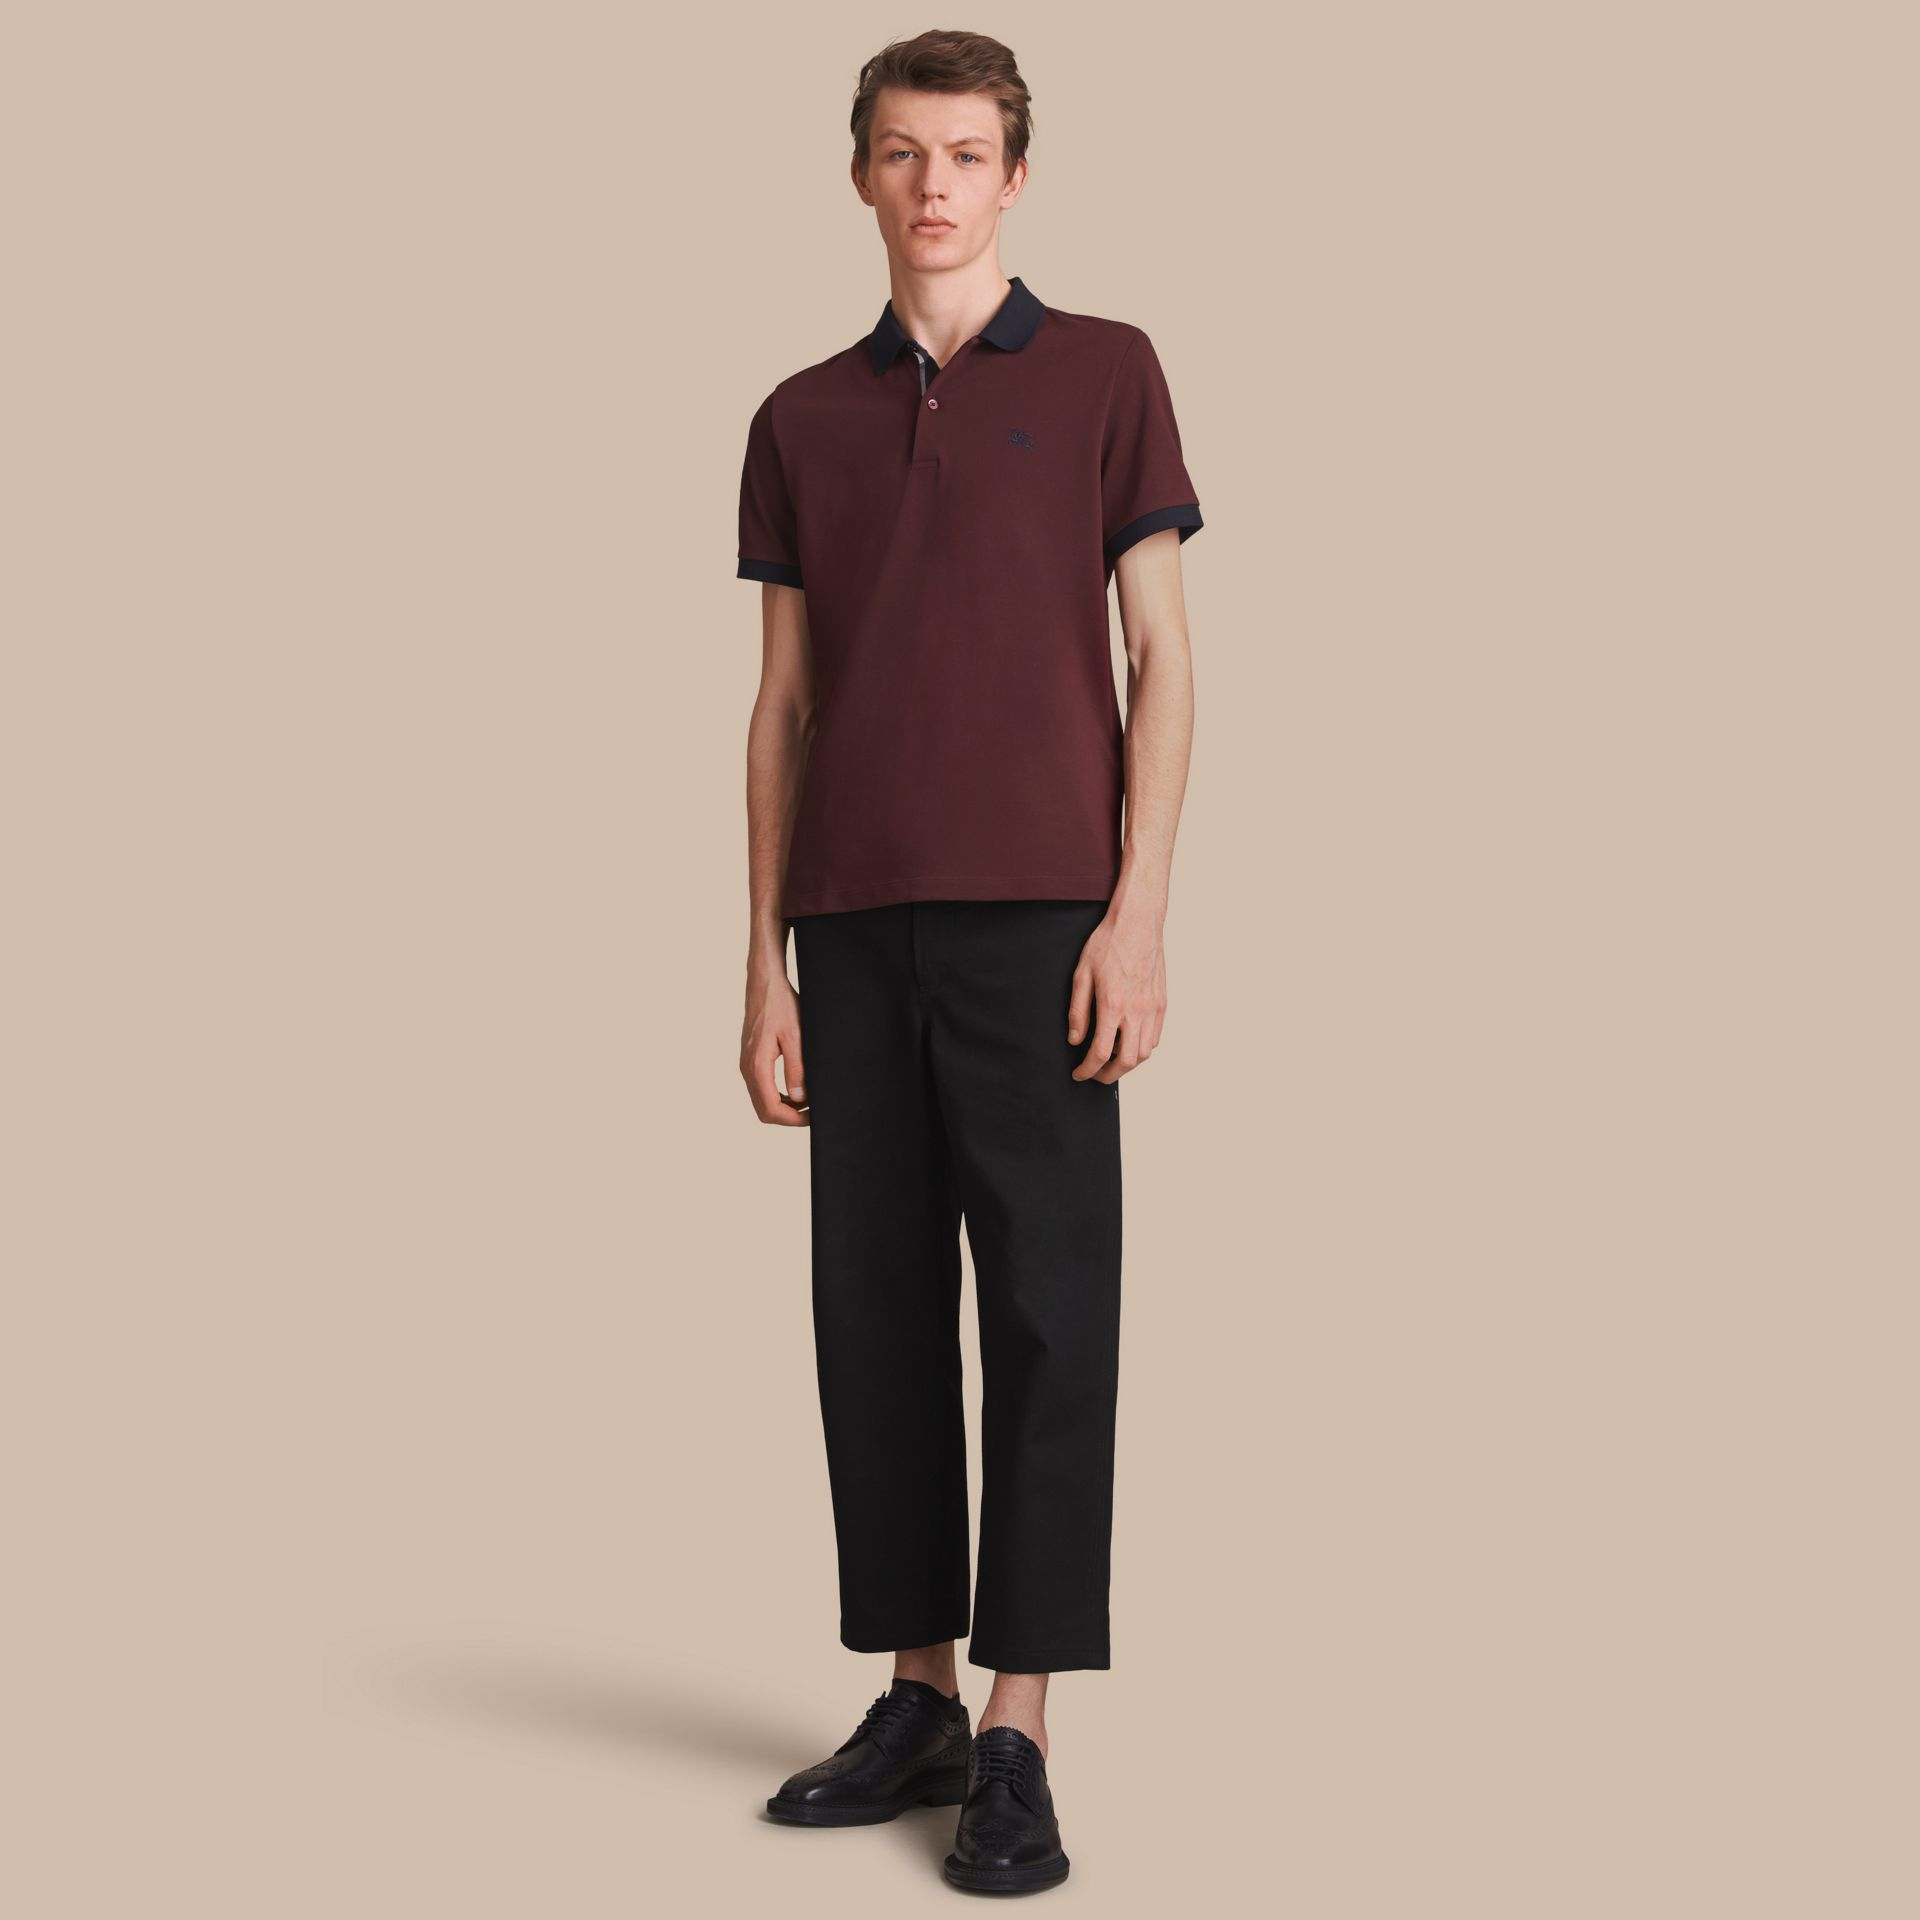 Two-tone Check Placket Cotton Piqué Polo Shirt in Deep Claret - Men | Burberry Australia - gallery image 1